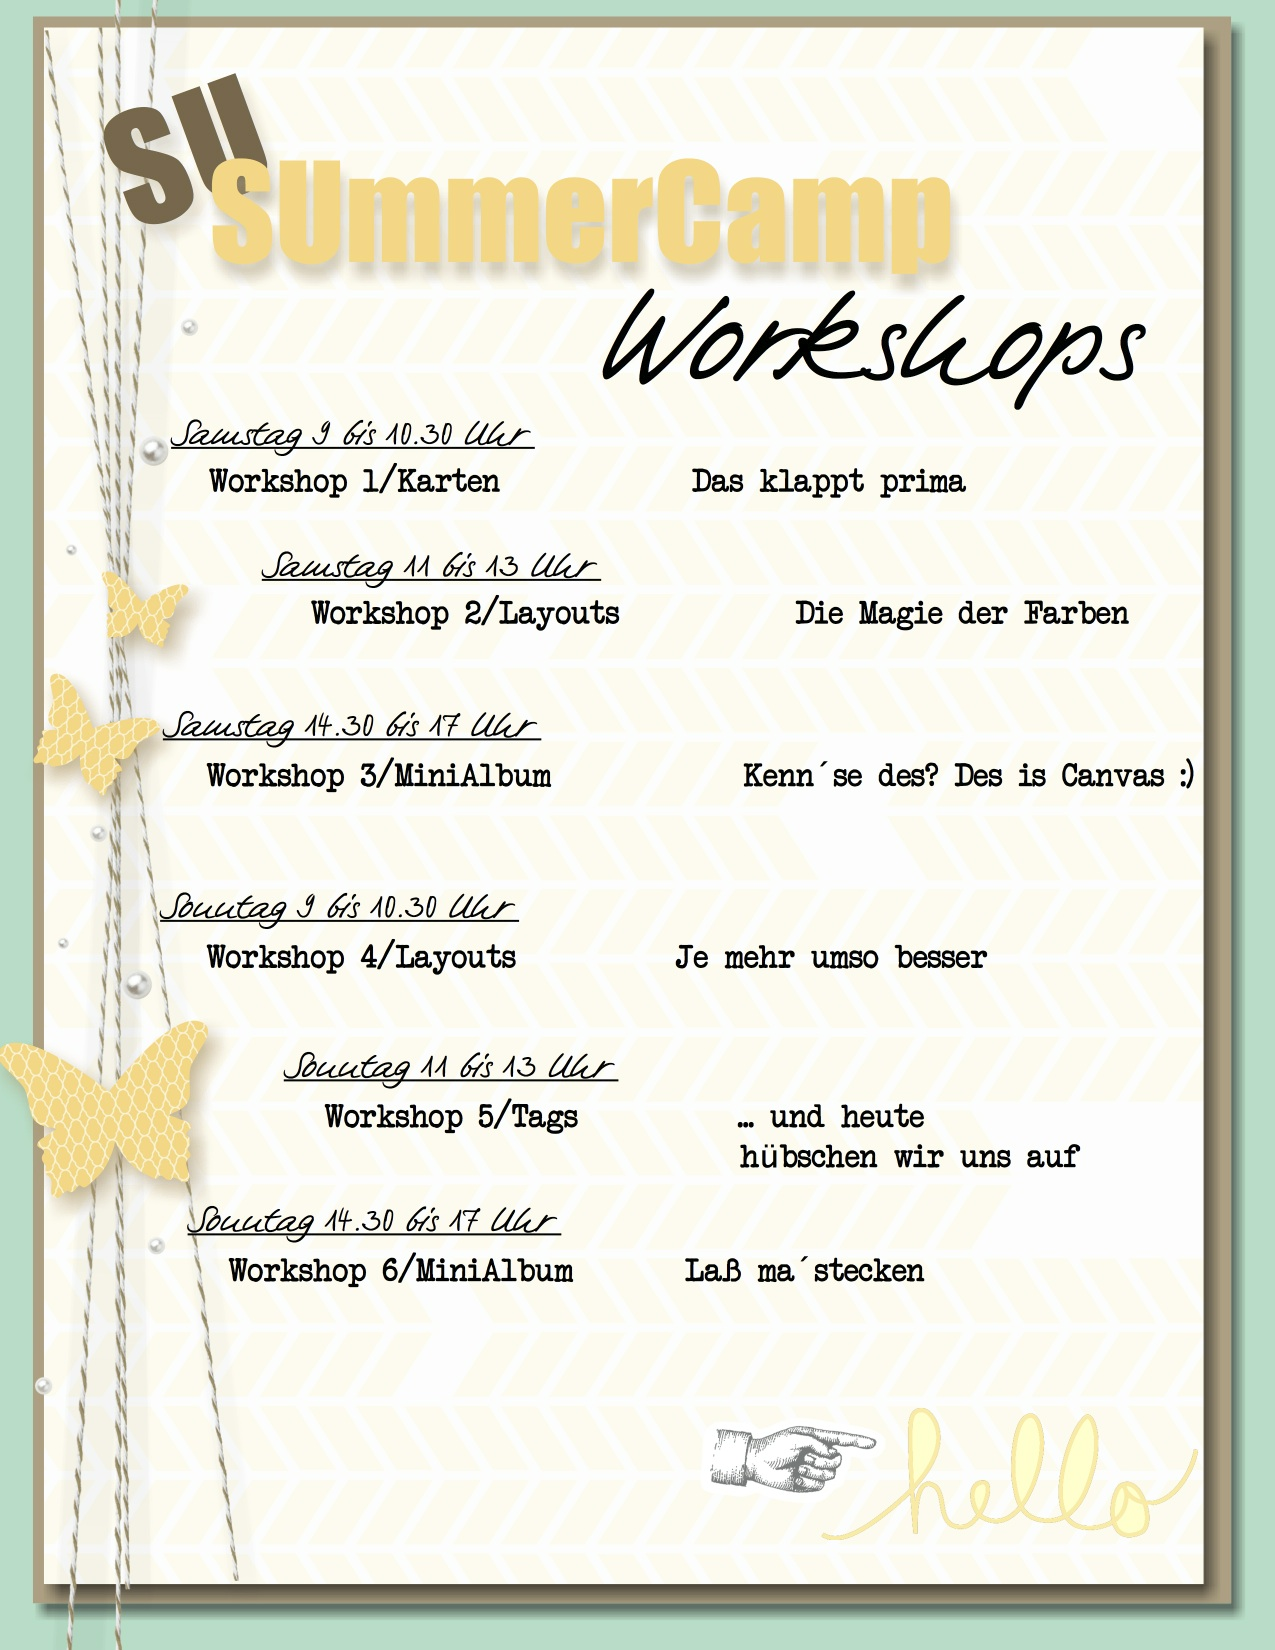 SUmmerCamp WorkshopPlan